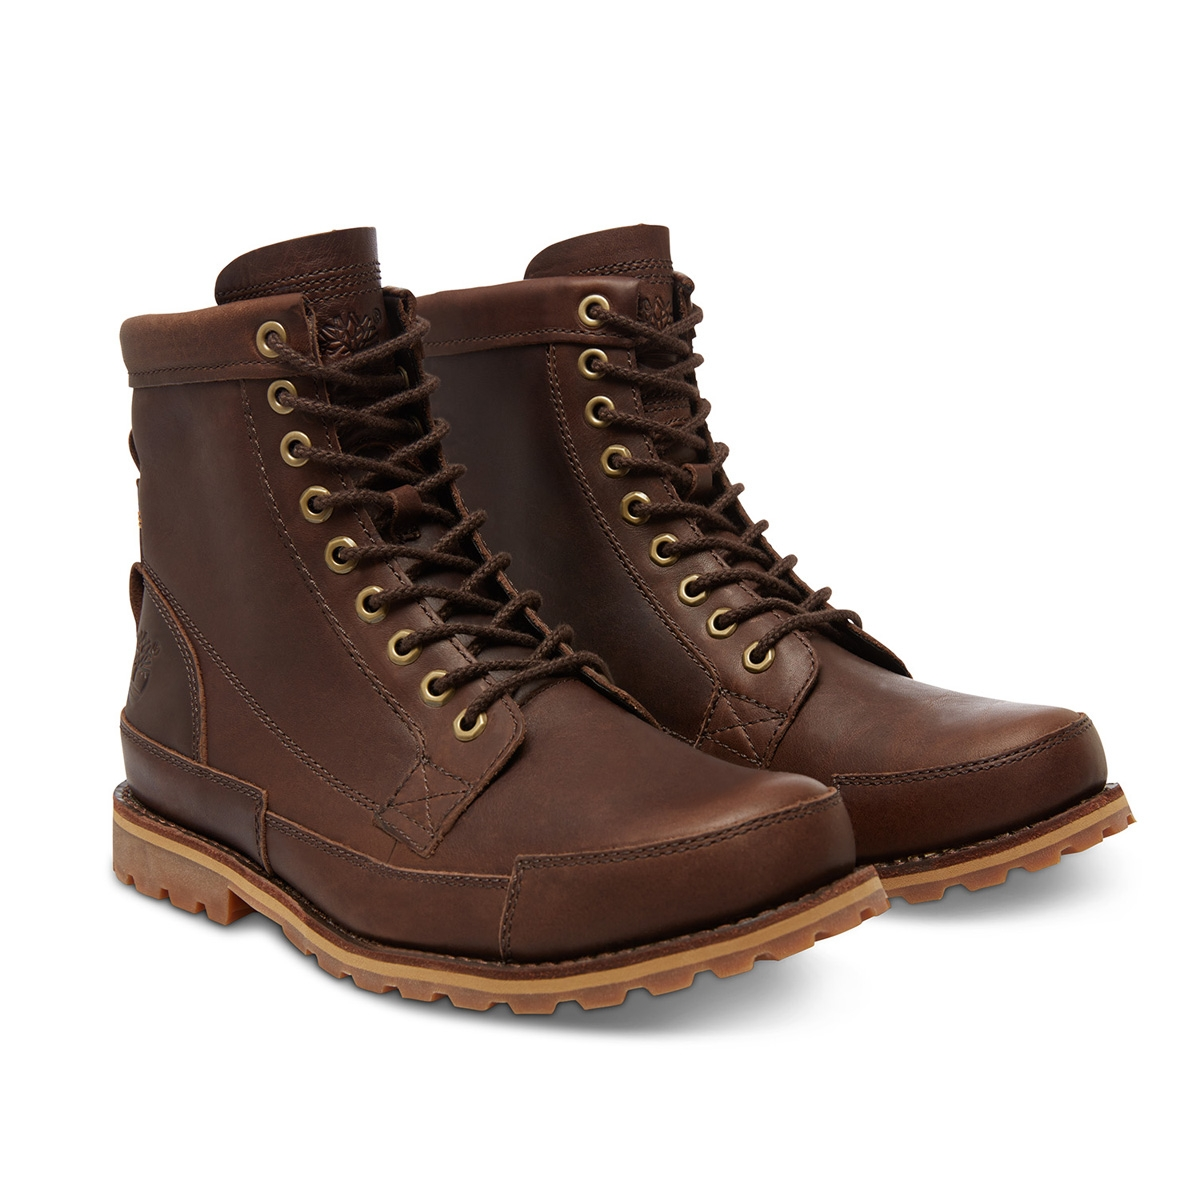 ... Image of Timberland Earthkeepers Original 6 Inch Mens Casual Boots  (Men s) - Mulchy Forty ... 7ab9d1d96